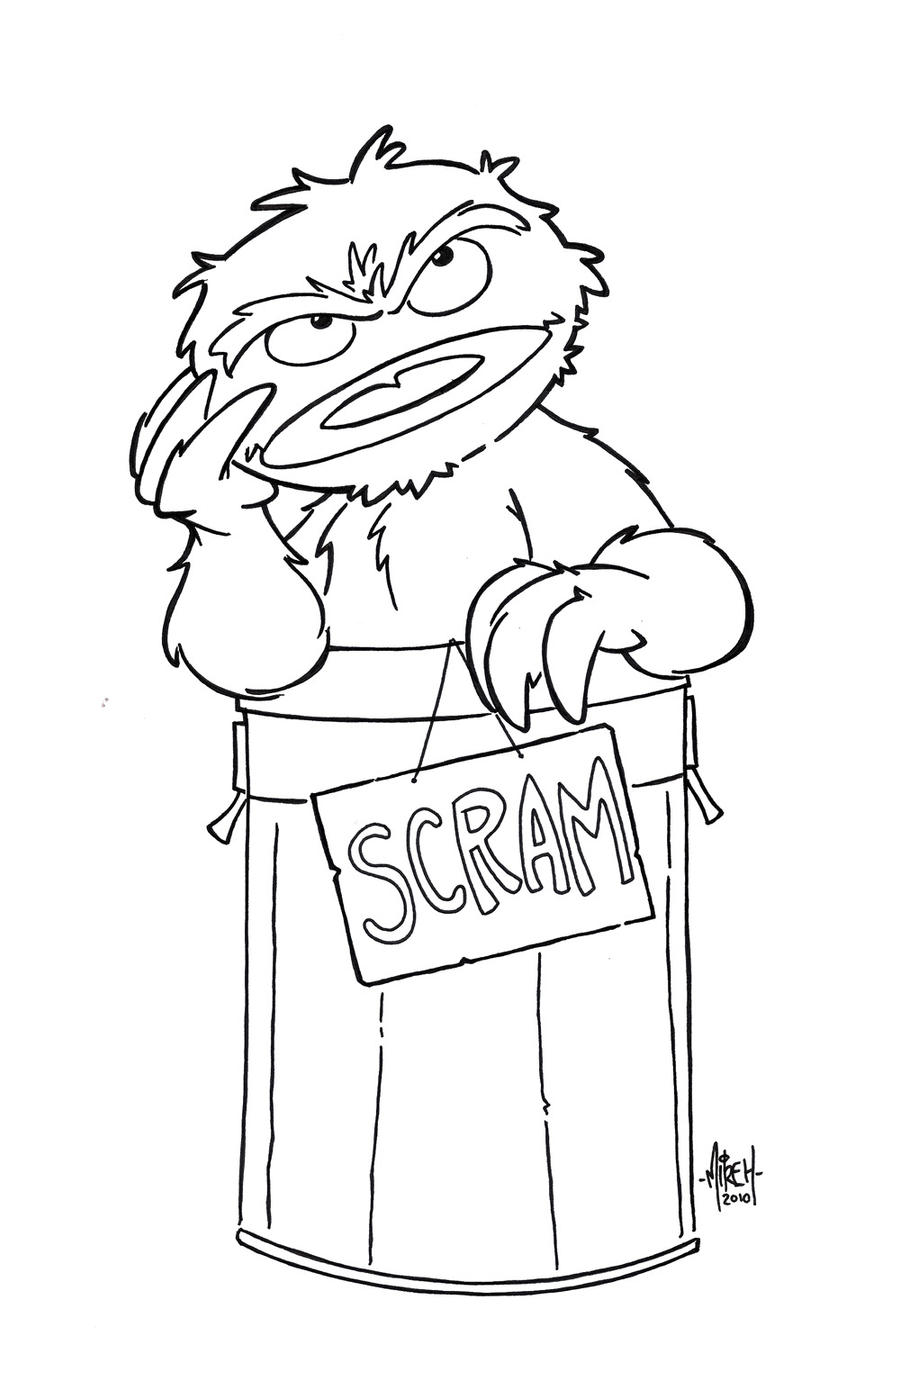 O Is For Oscar Inks By Tyrannus On Deviantart Oscar The Grouch Coloring Page